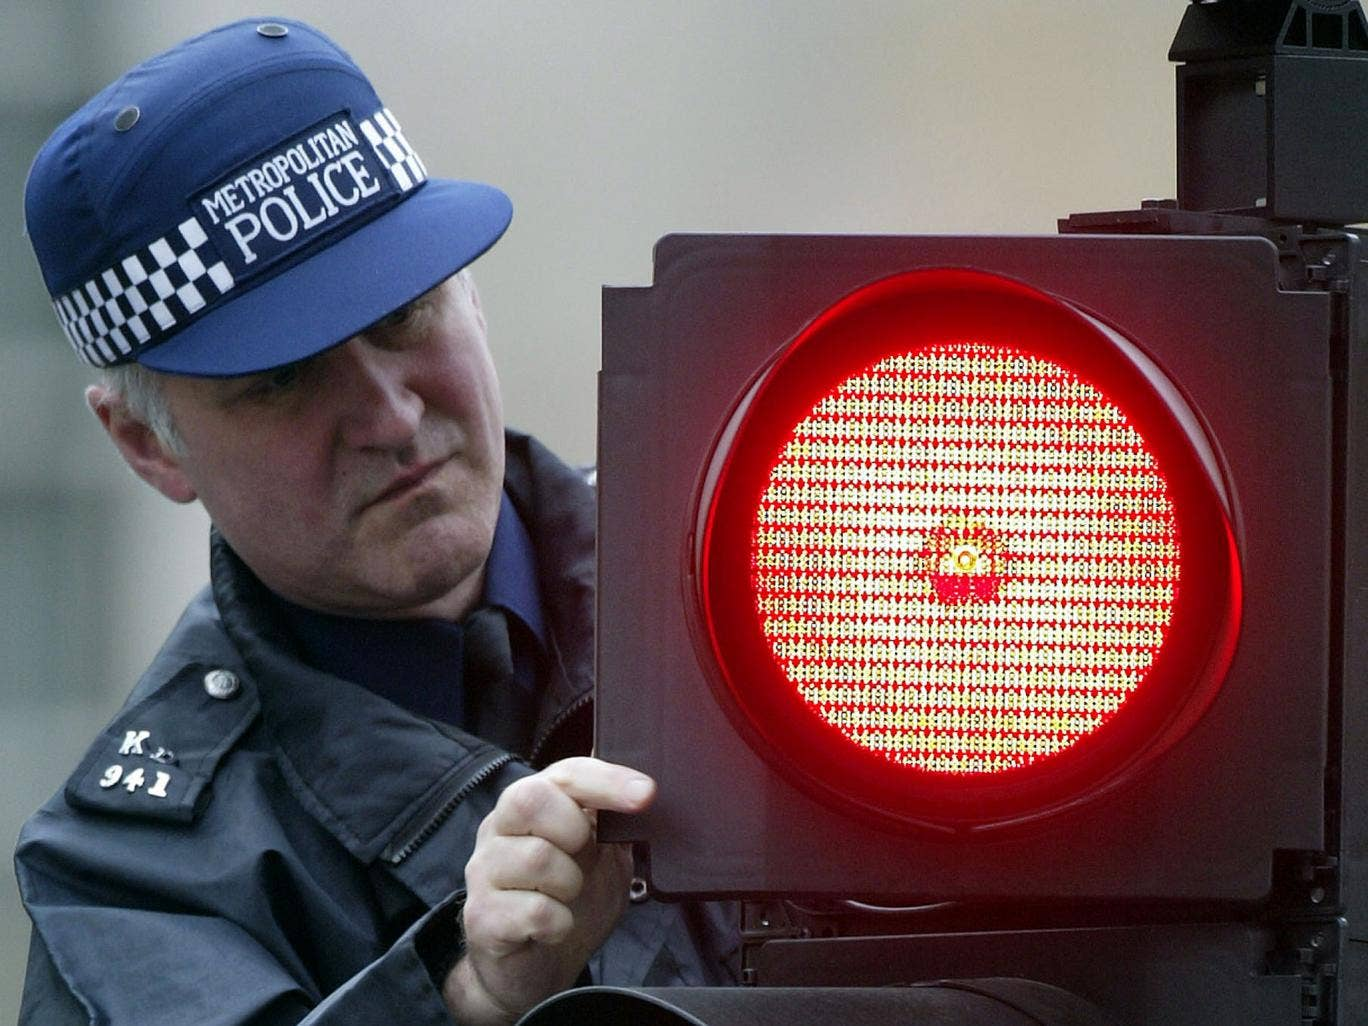 A malicious hacker could manipulate traffic lights to cause jams and alter speed limits, an expert has claimed